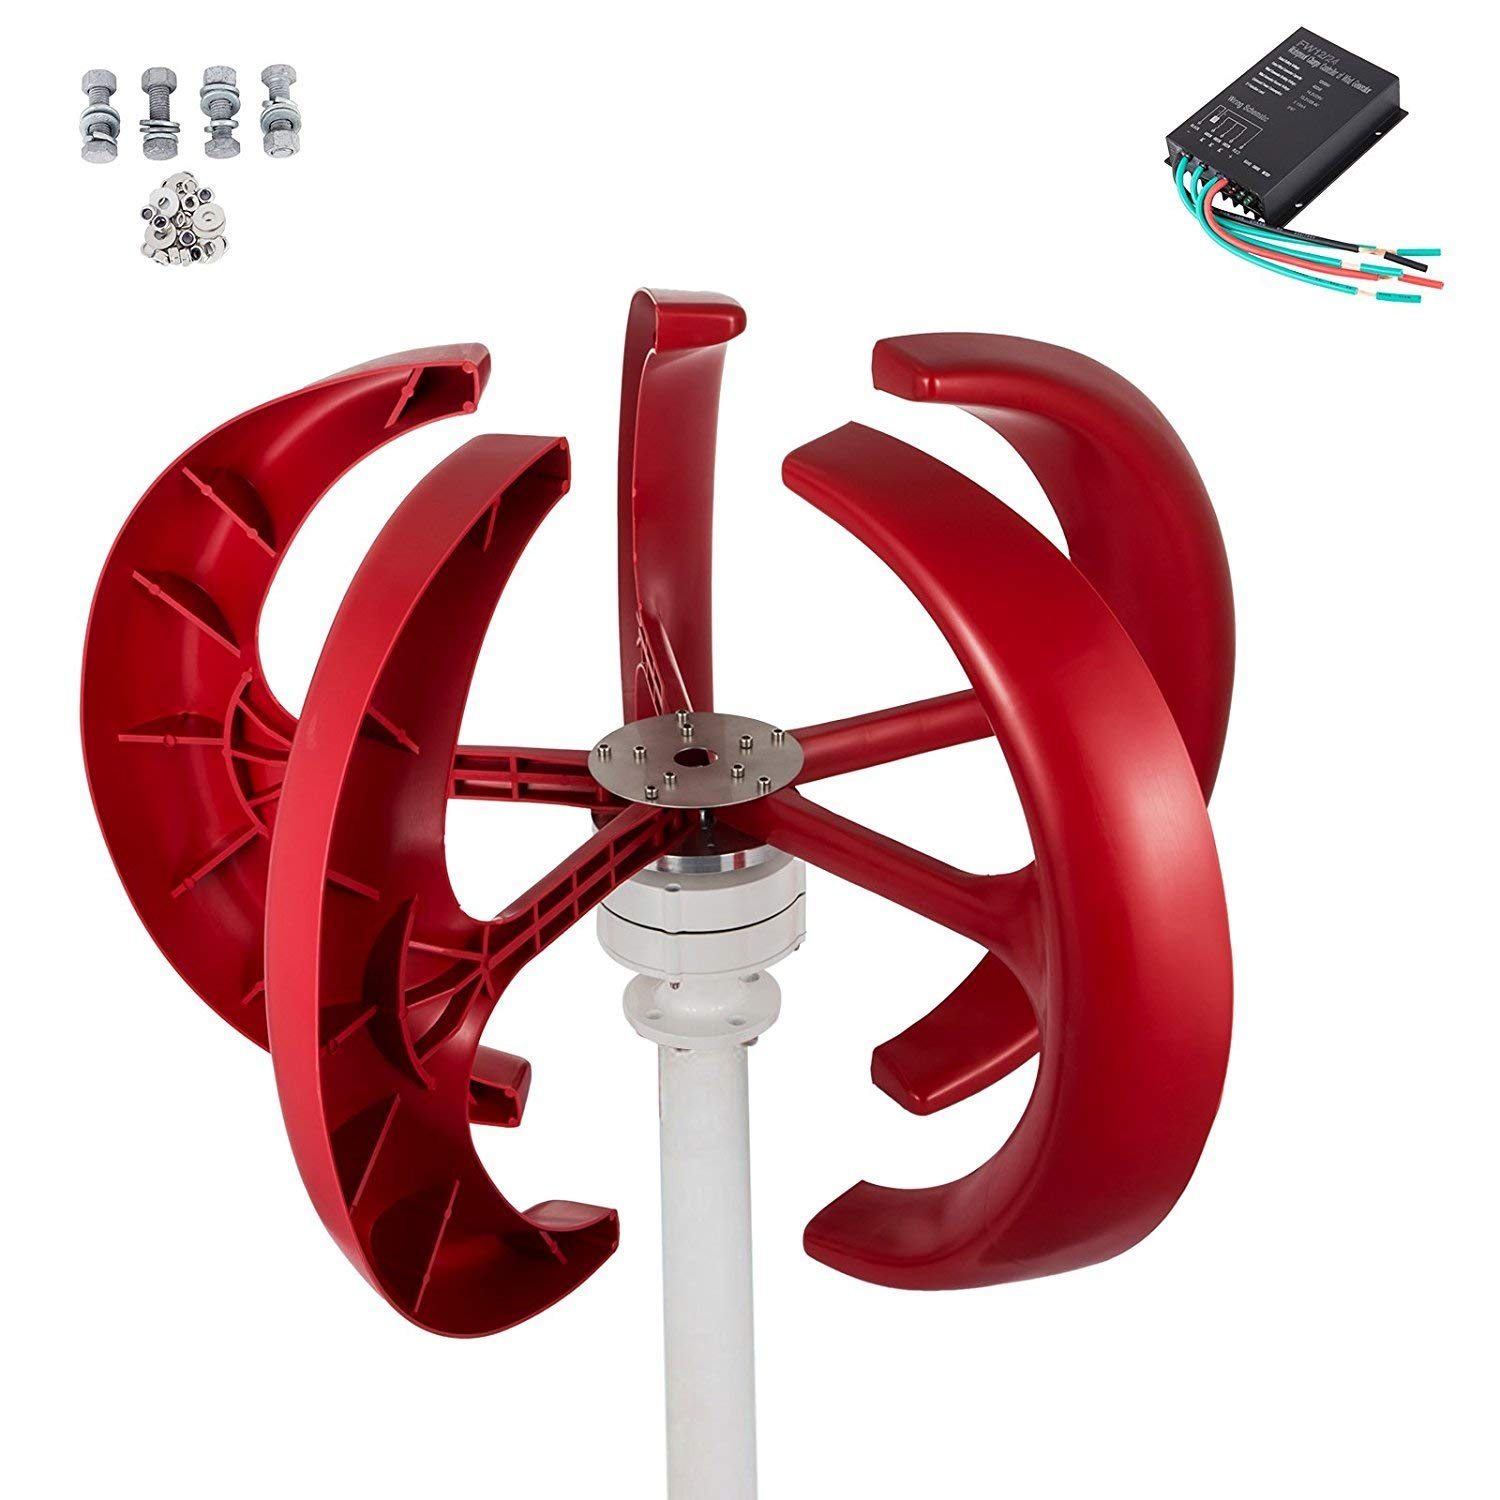 VEVOR Wind Turbine 400W 12V Wind Turbine Generator Red Lantern Vertical Wind Generator 5 Leaves Wind Turbine Kit with Controller